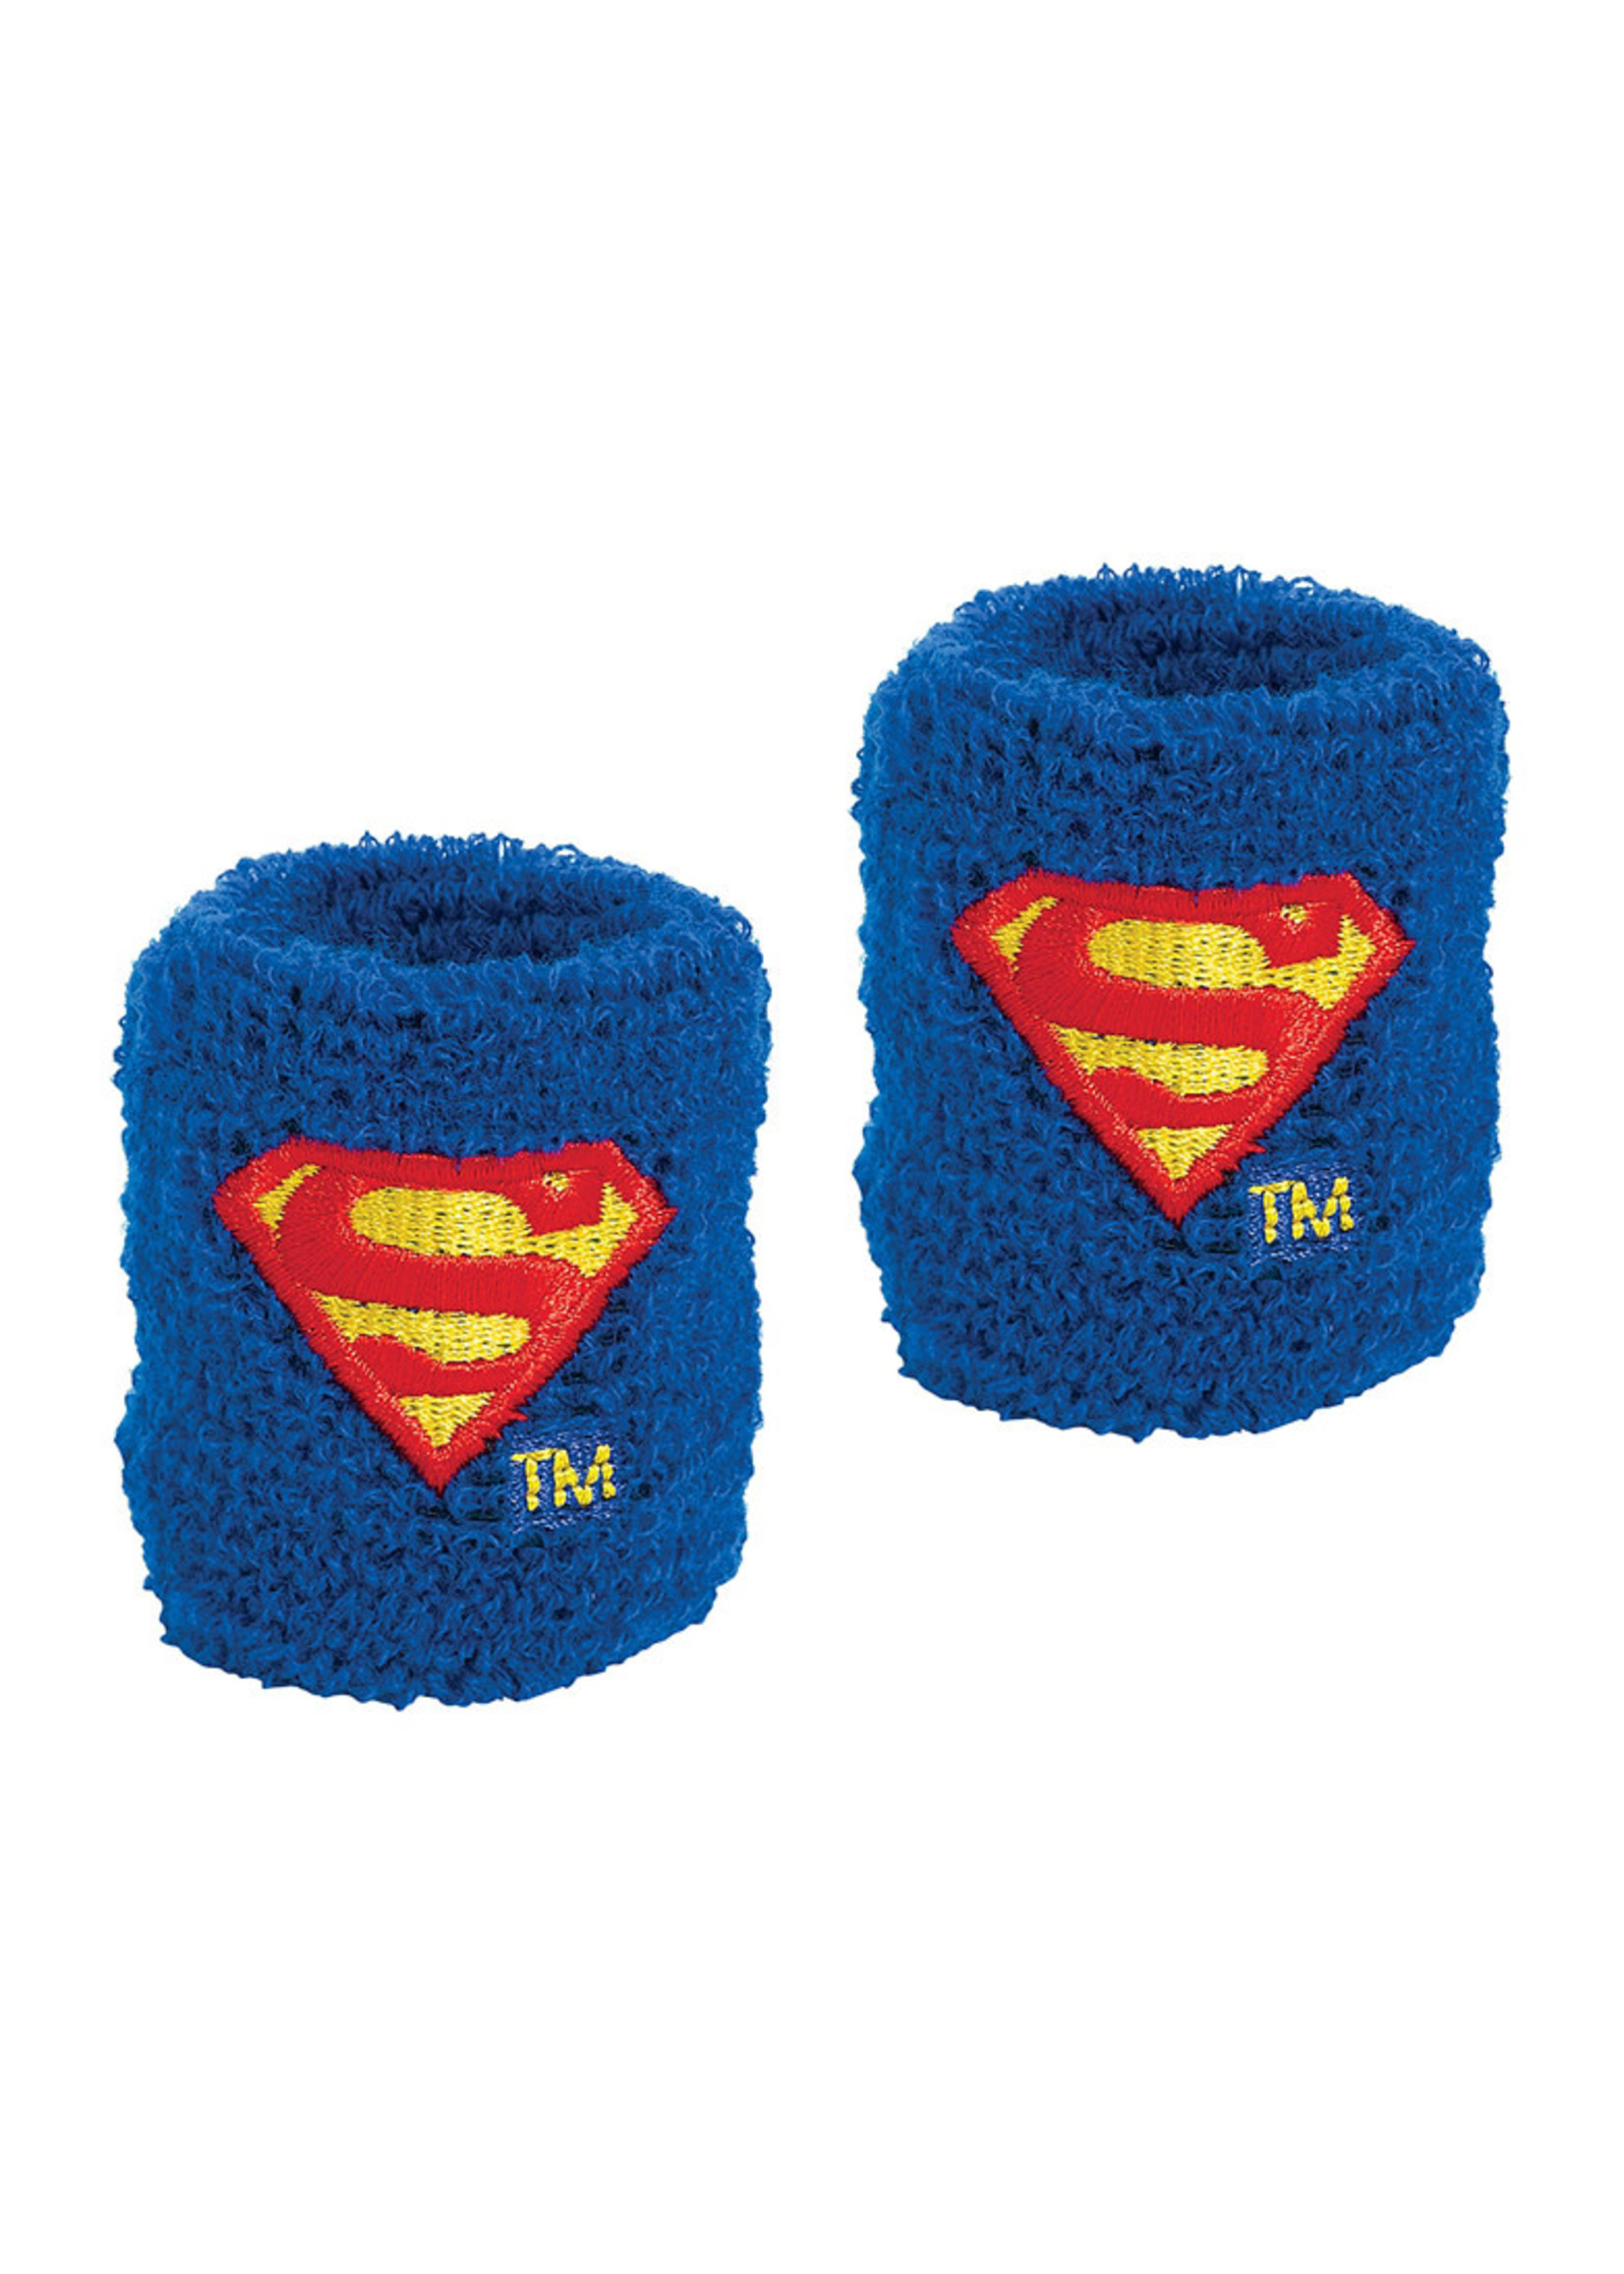 Justice League Heroes Unite Superman Sweatbands 8ct